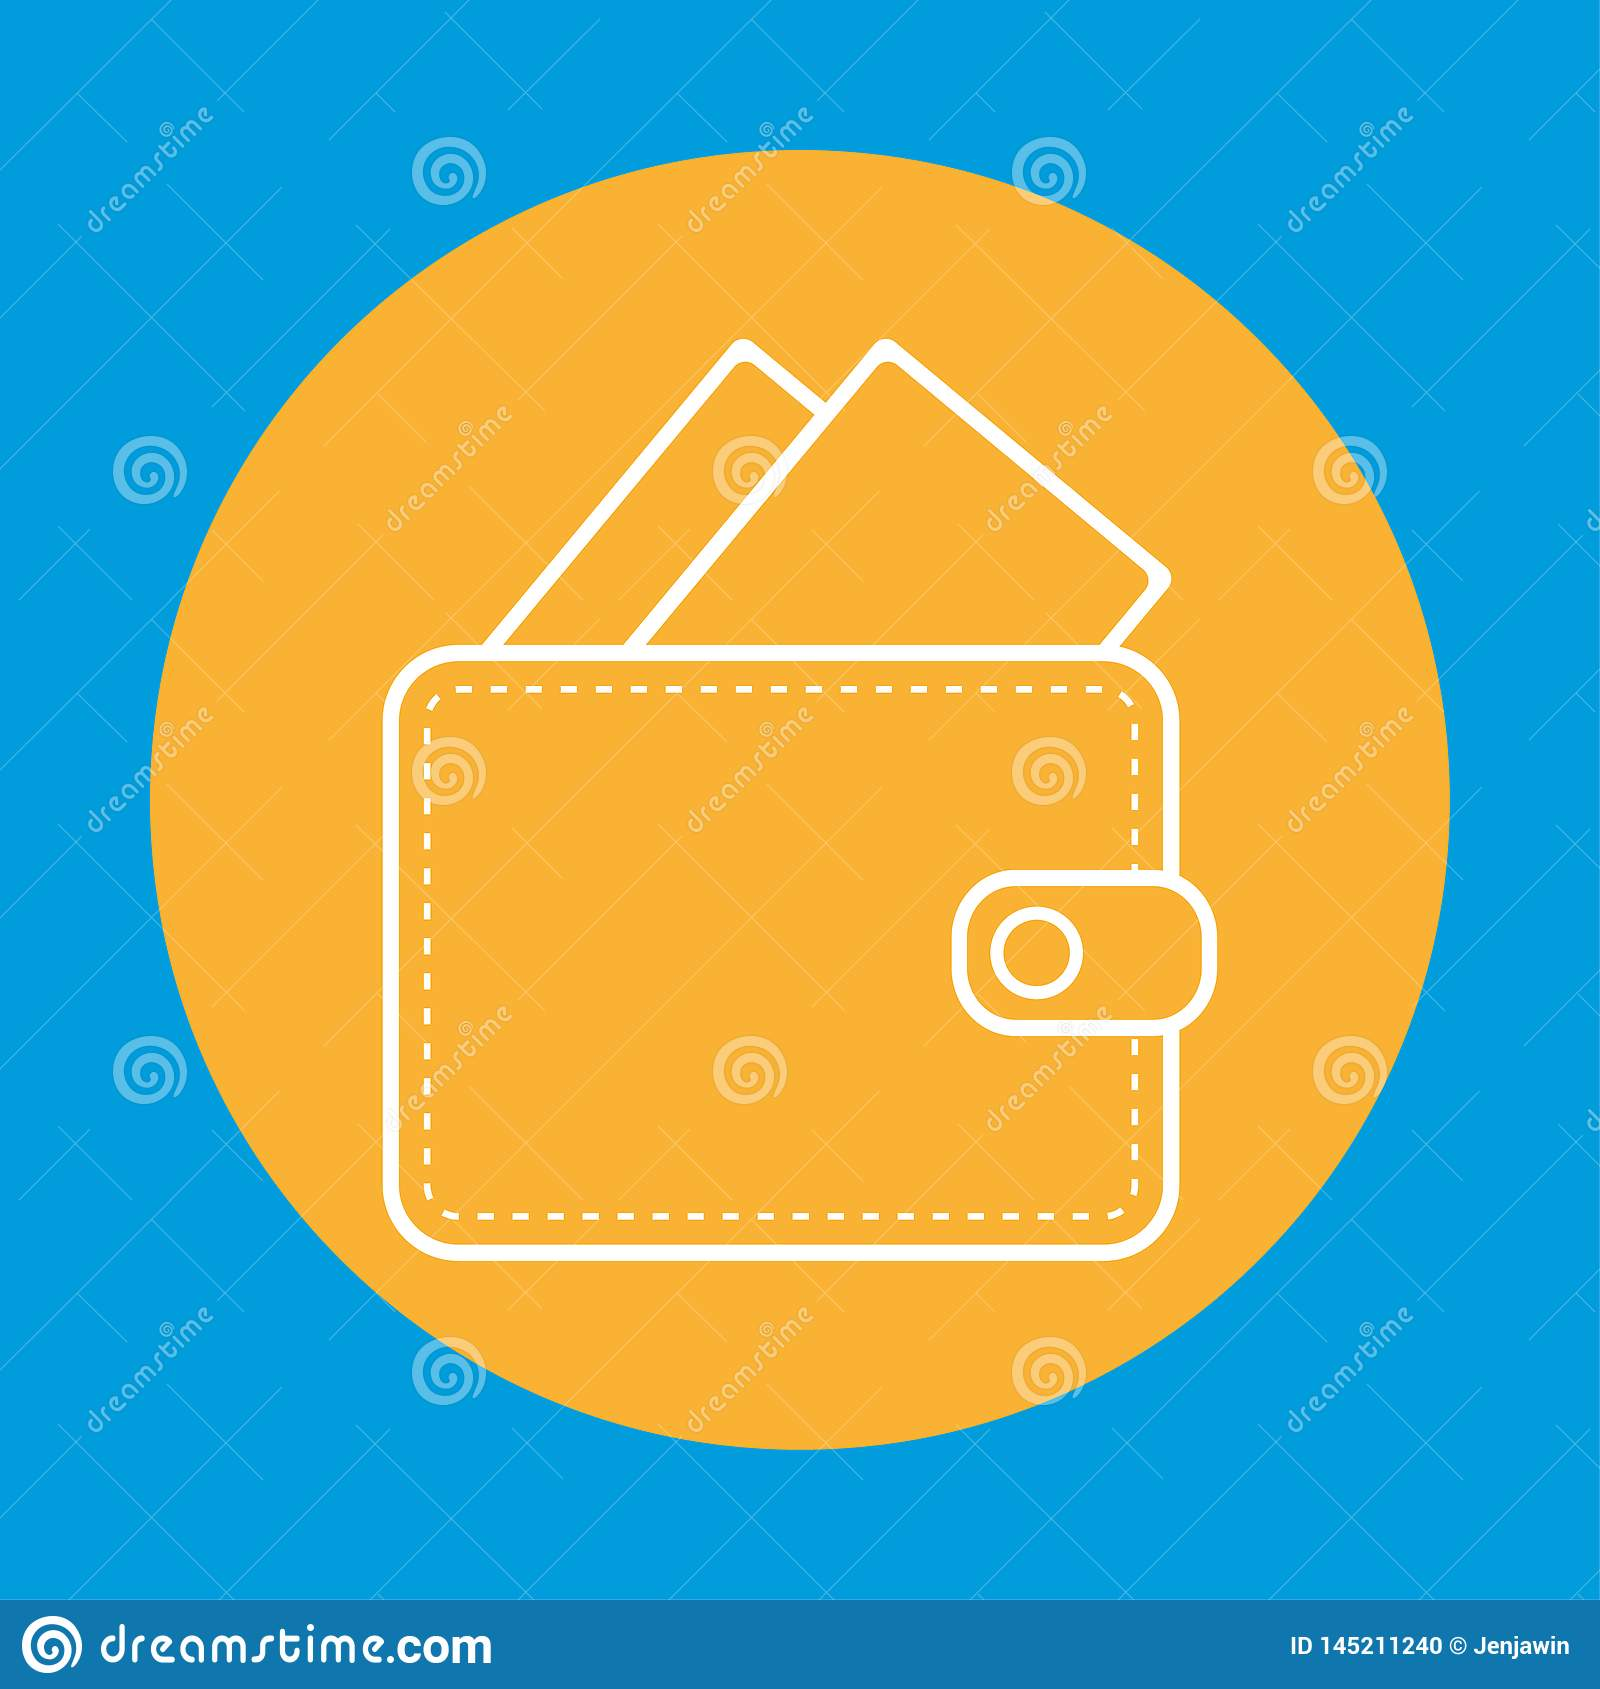 White color Wallet outline woth banknotes money inside. wallet with money outline in orange circle icon vector eps10